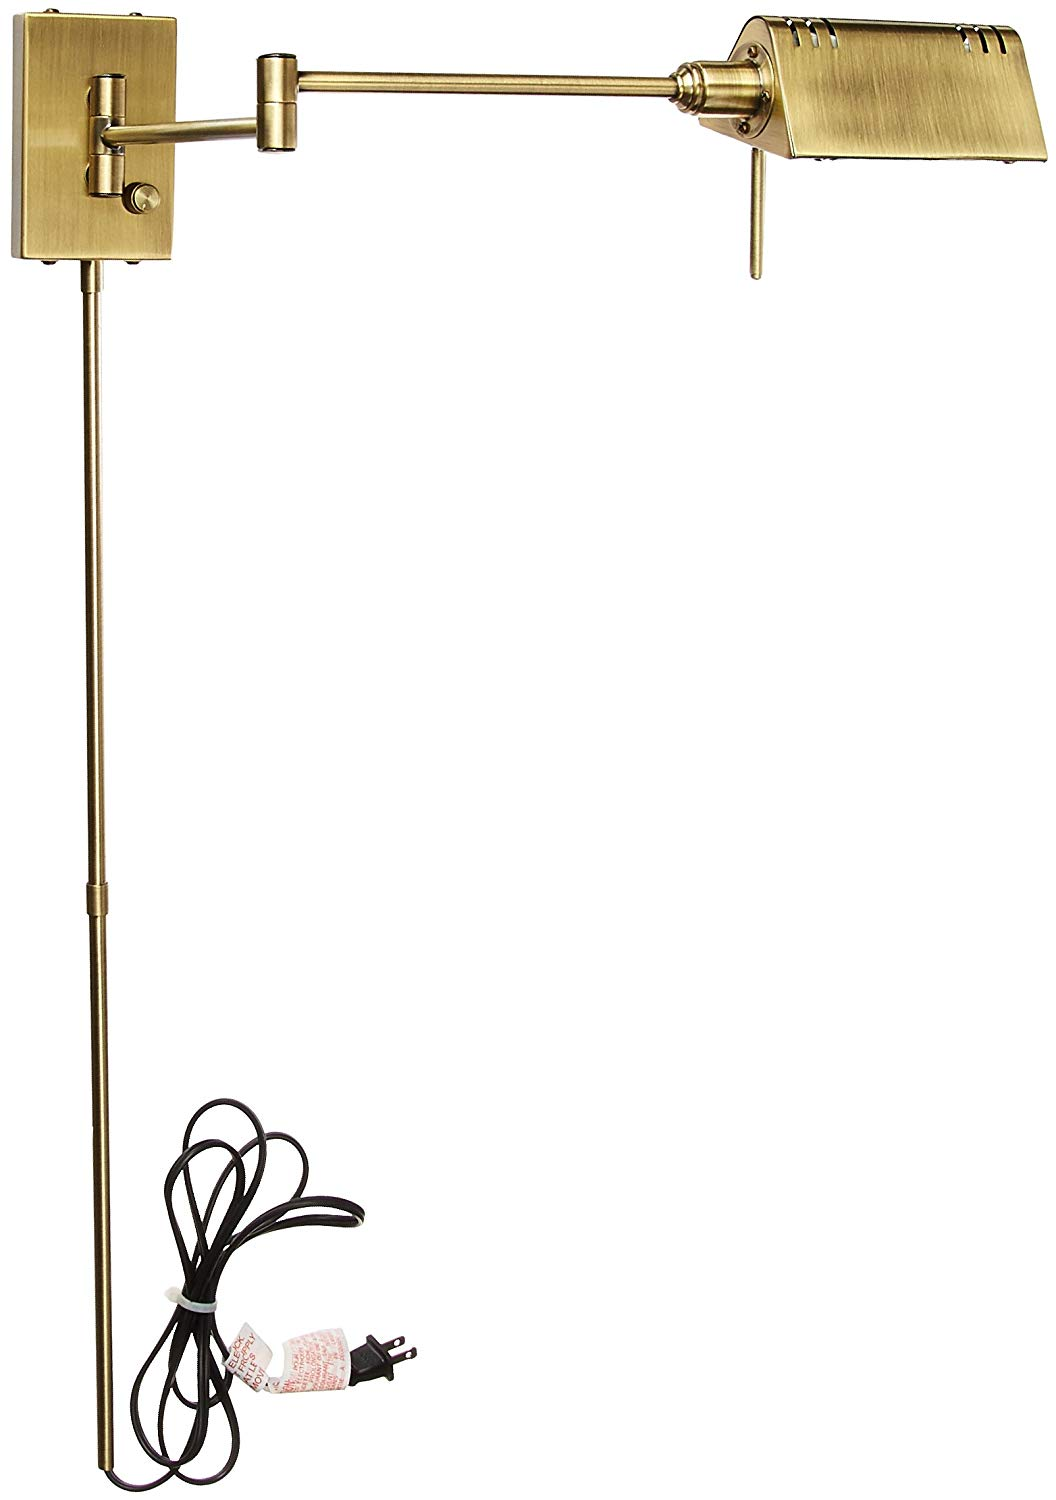 Lite Source LS-1101AB Pharma Collection Swing Arm Wall Lamp with Antique Brass Metal Shade, Antique Brass